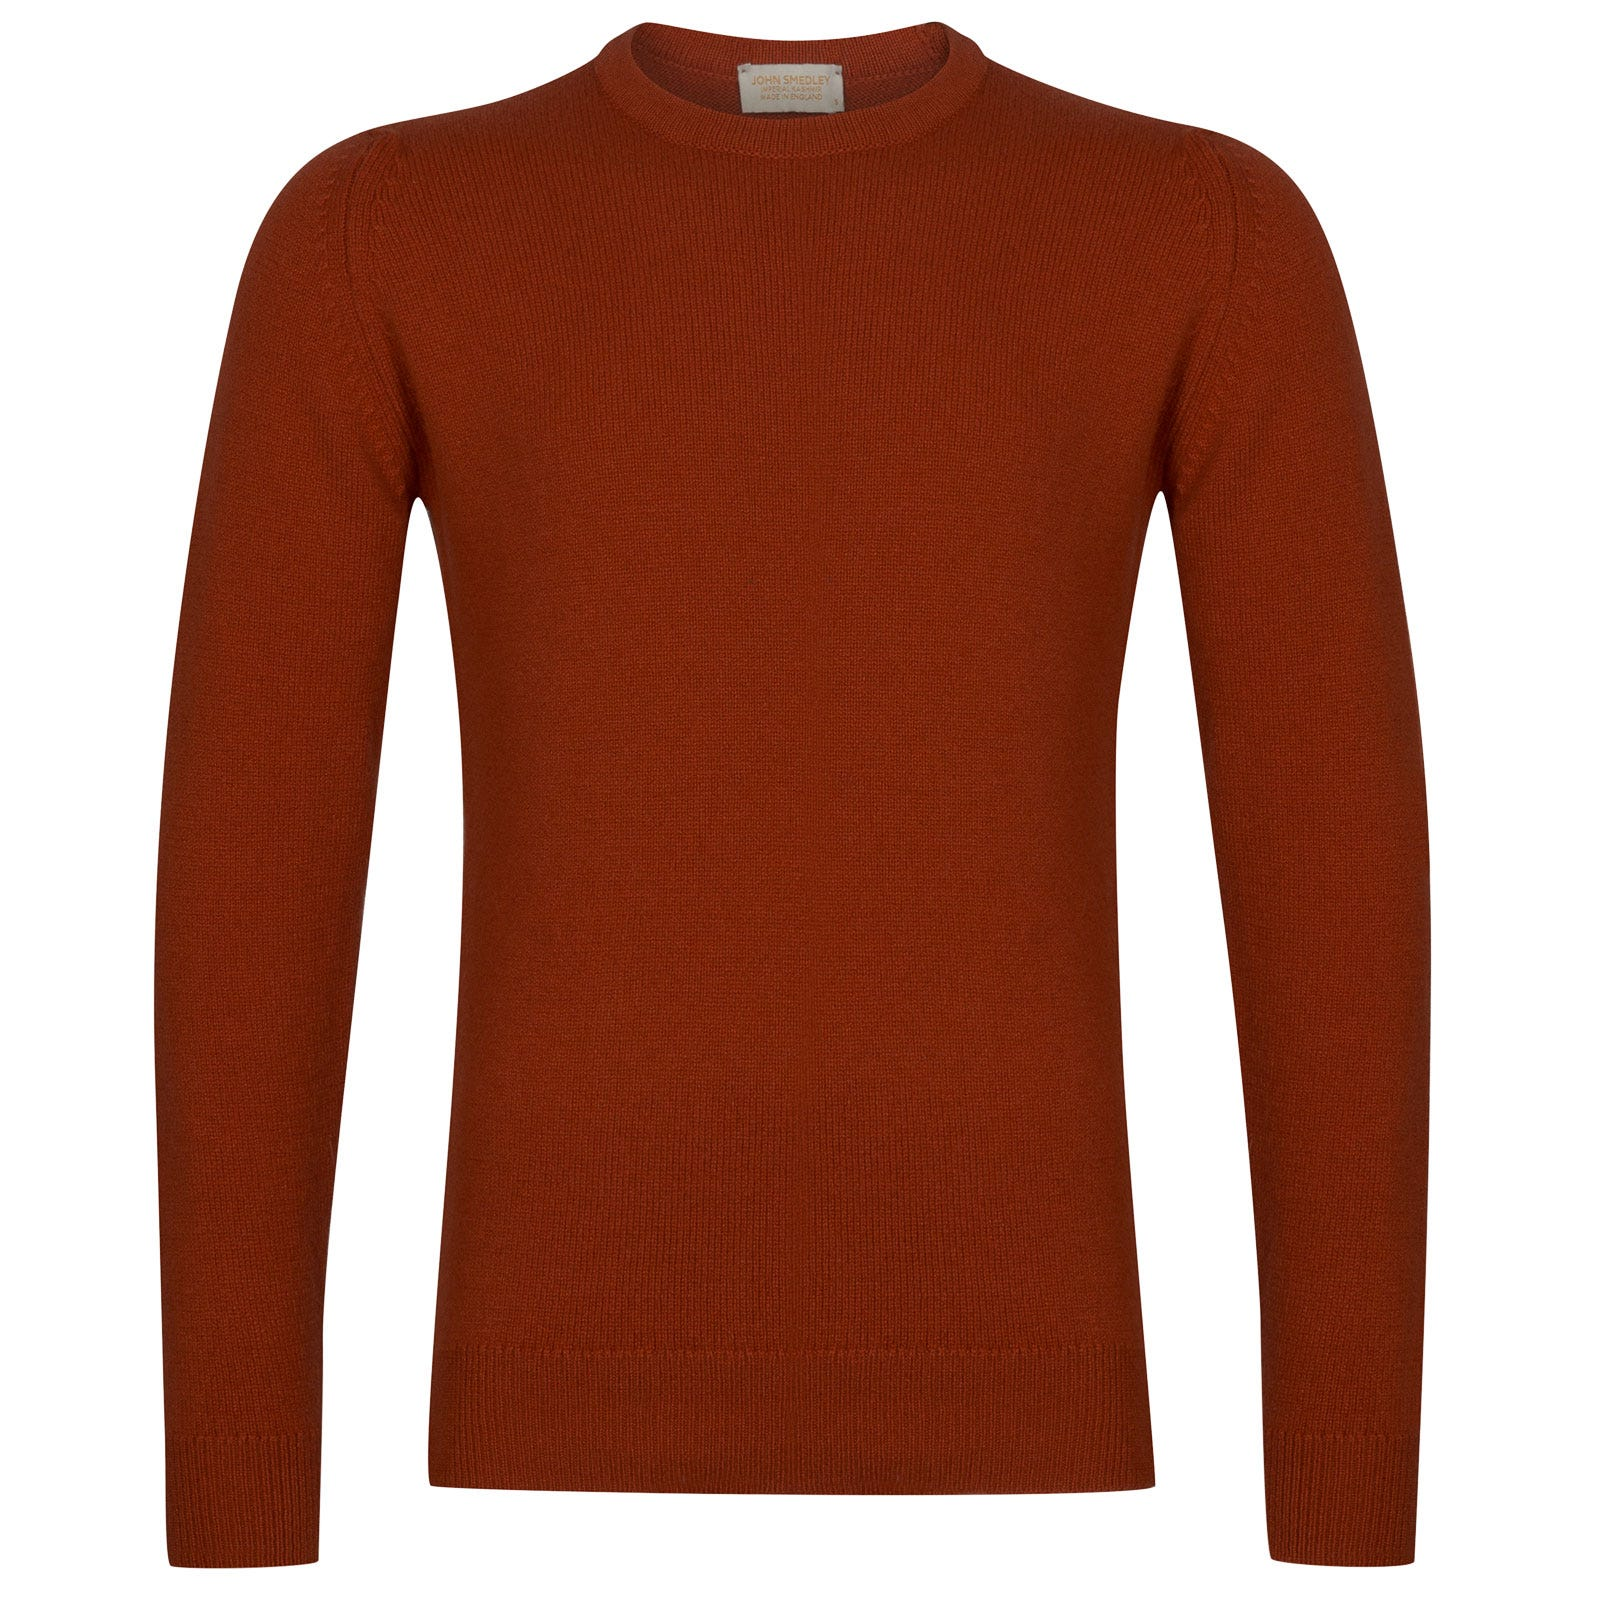 John Smedley Crowford Wool and Cashmere Pullover in Flare Orange-S